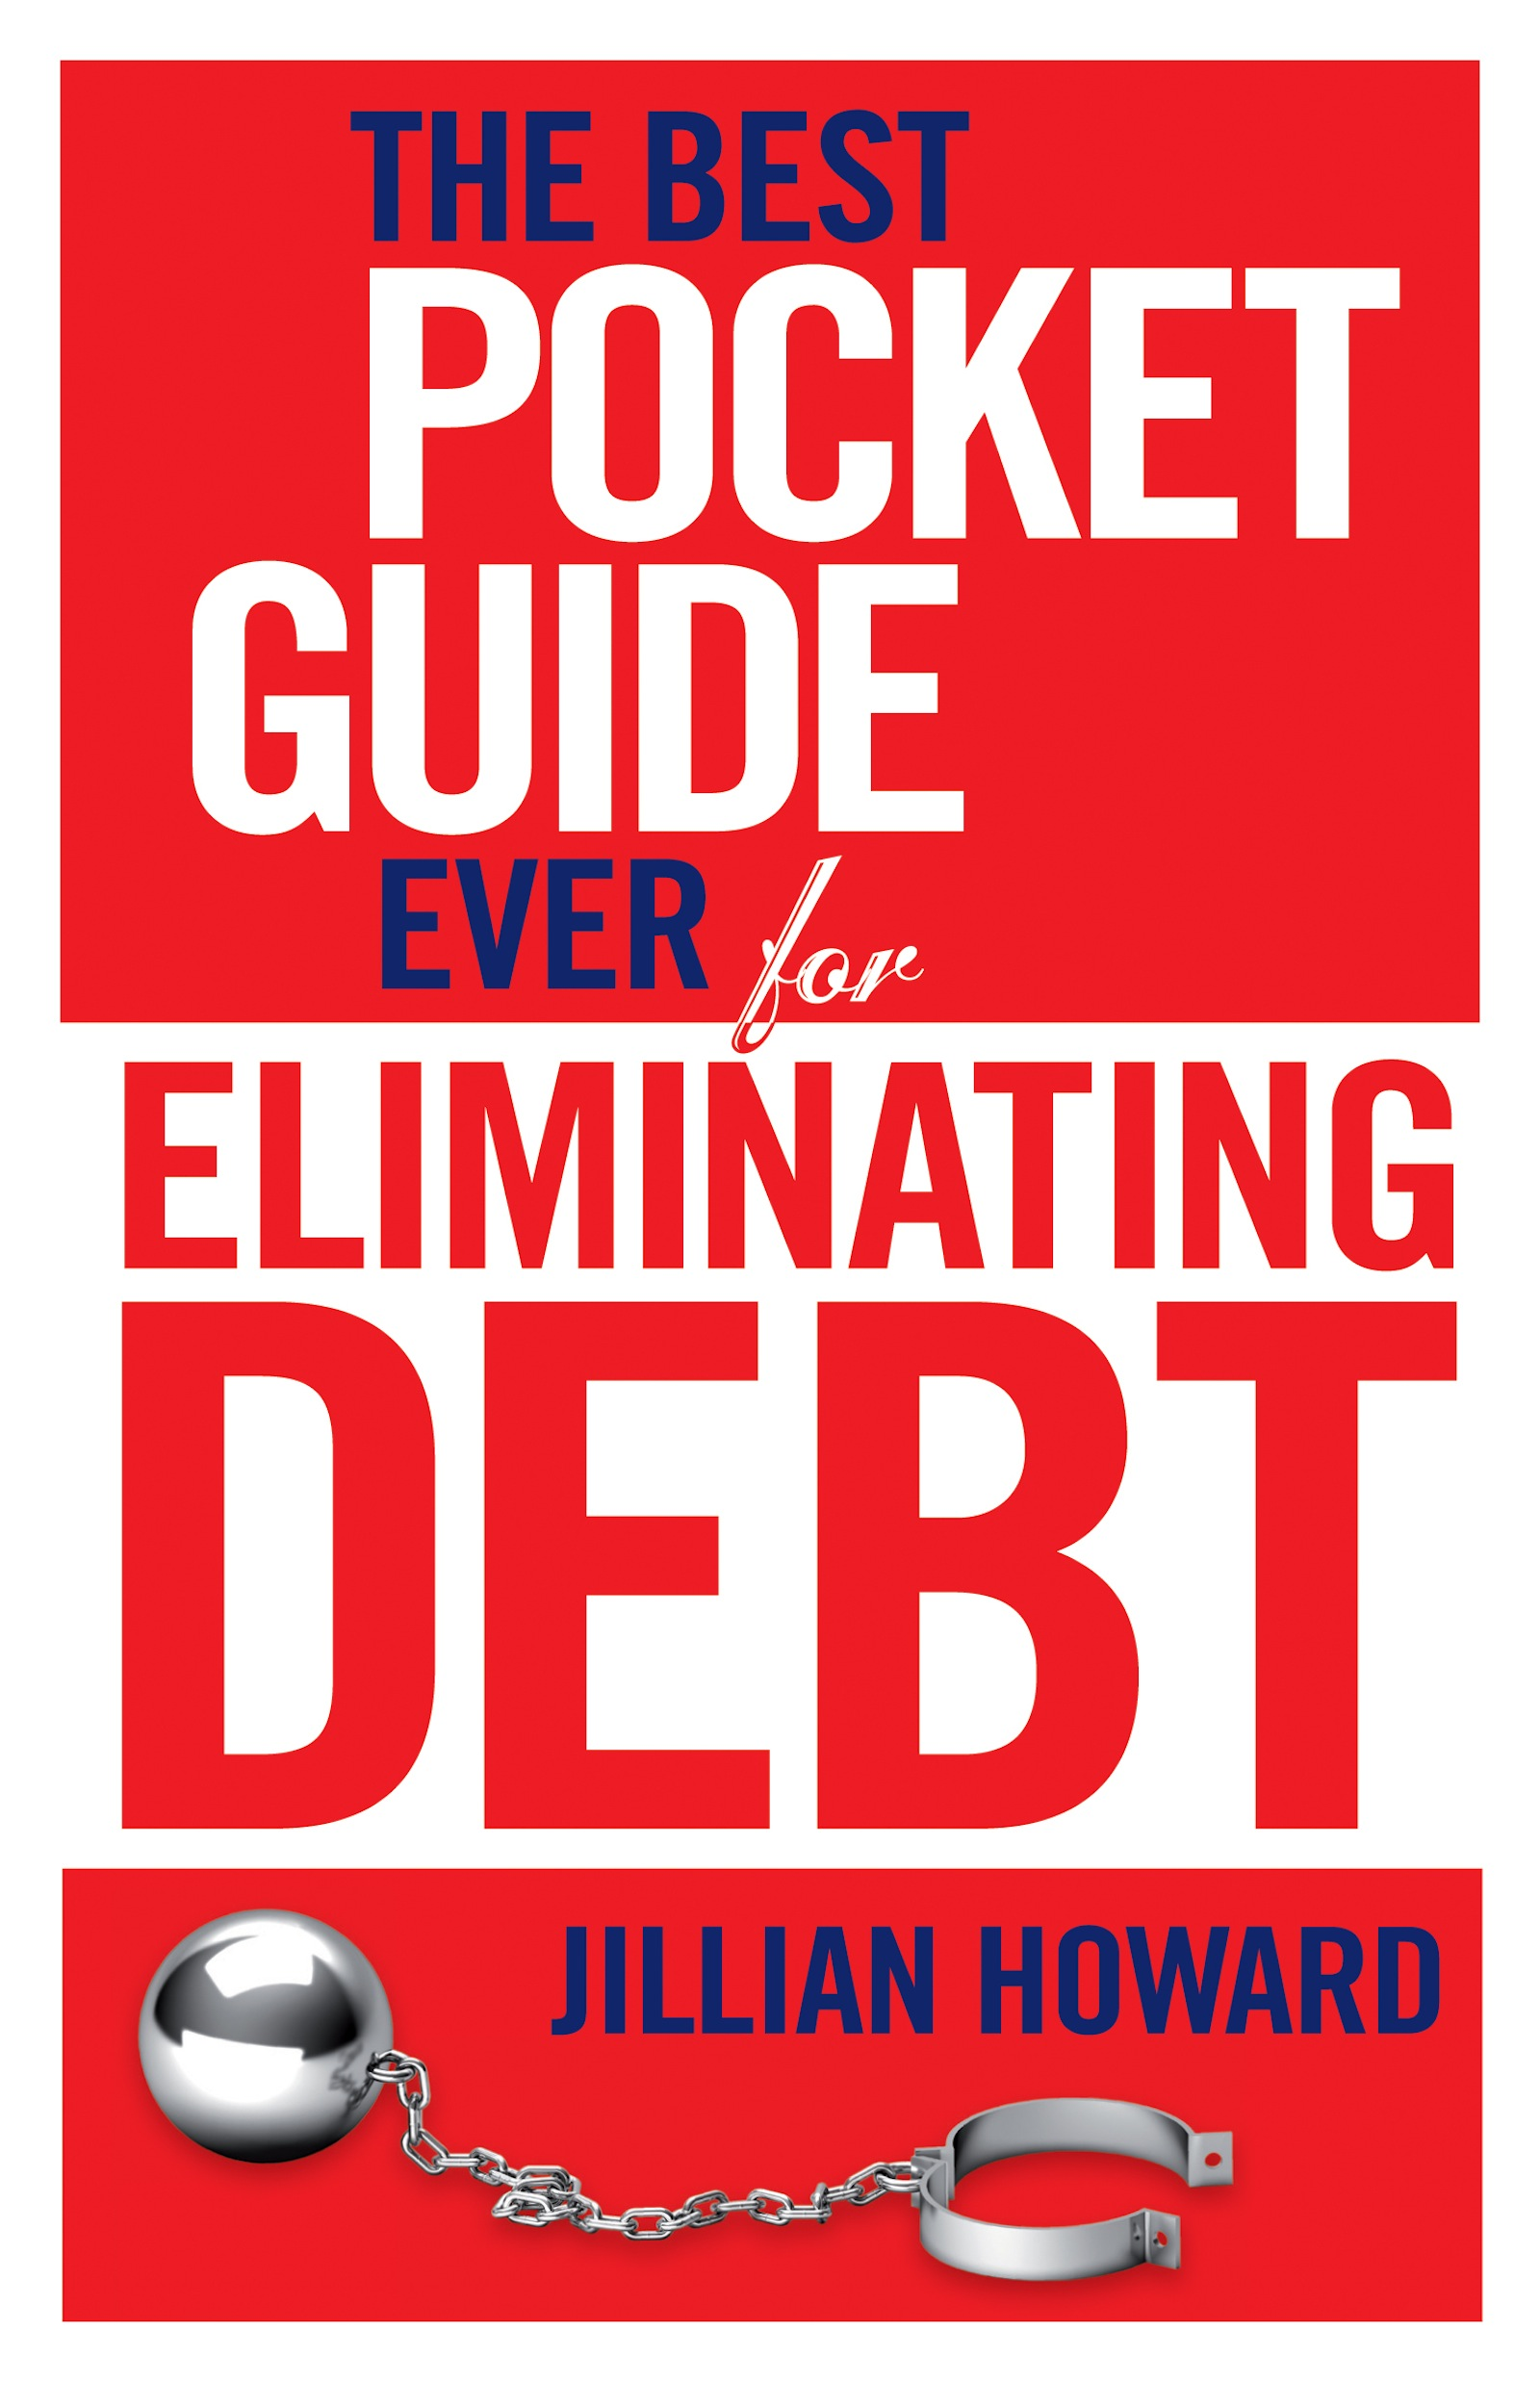 Download Ebook The Best Pocket Guide Ever for Eliminating Debt by Jillian Howard Pdf